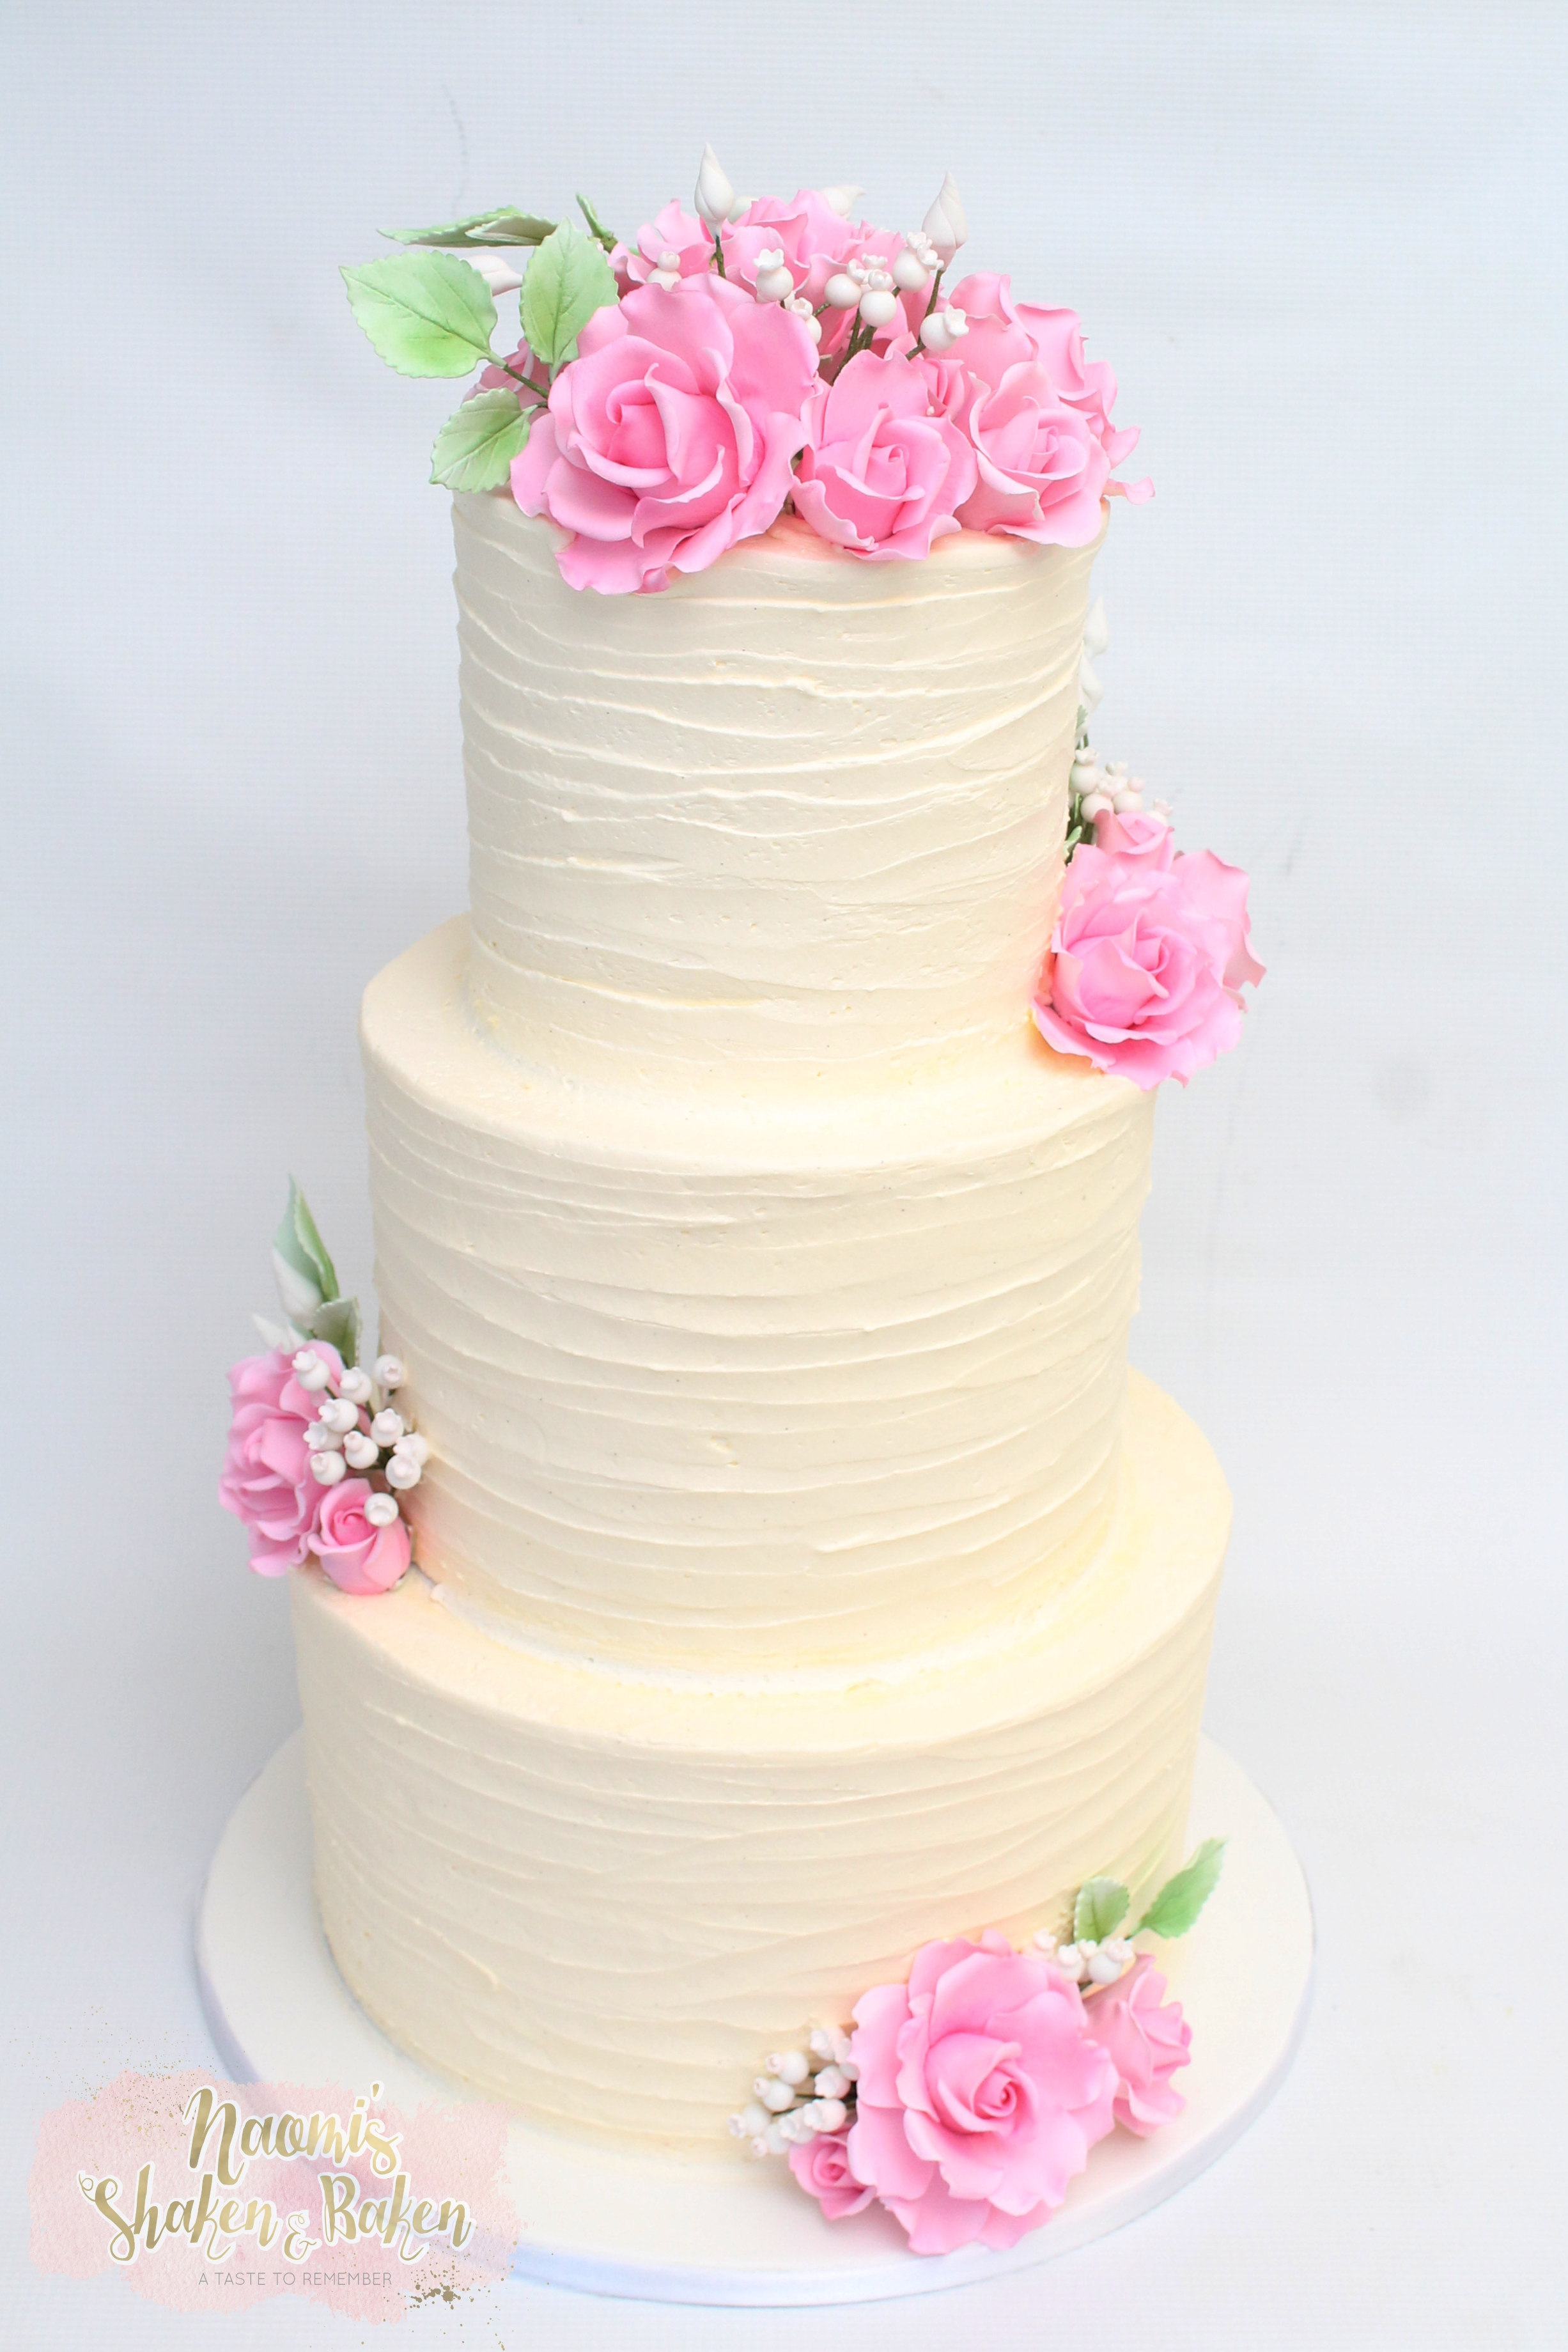 Wedding Cake Caloundra